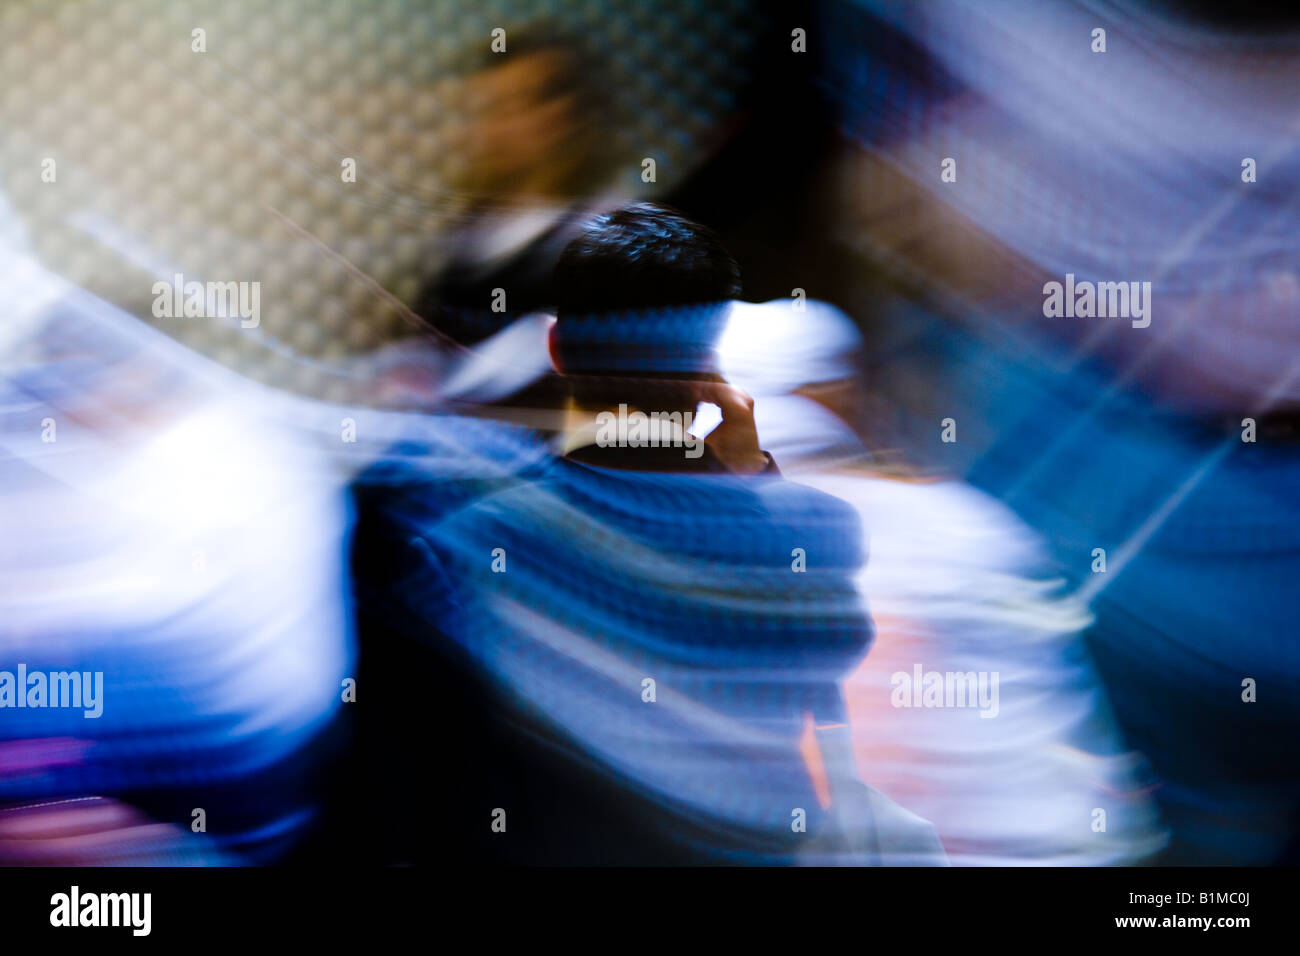 Business man in motion on the phone at a BART station. - Stock Image